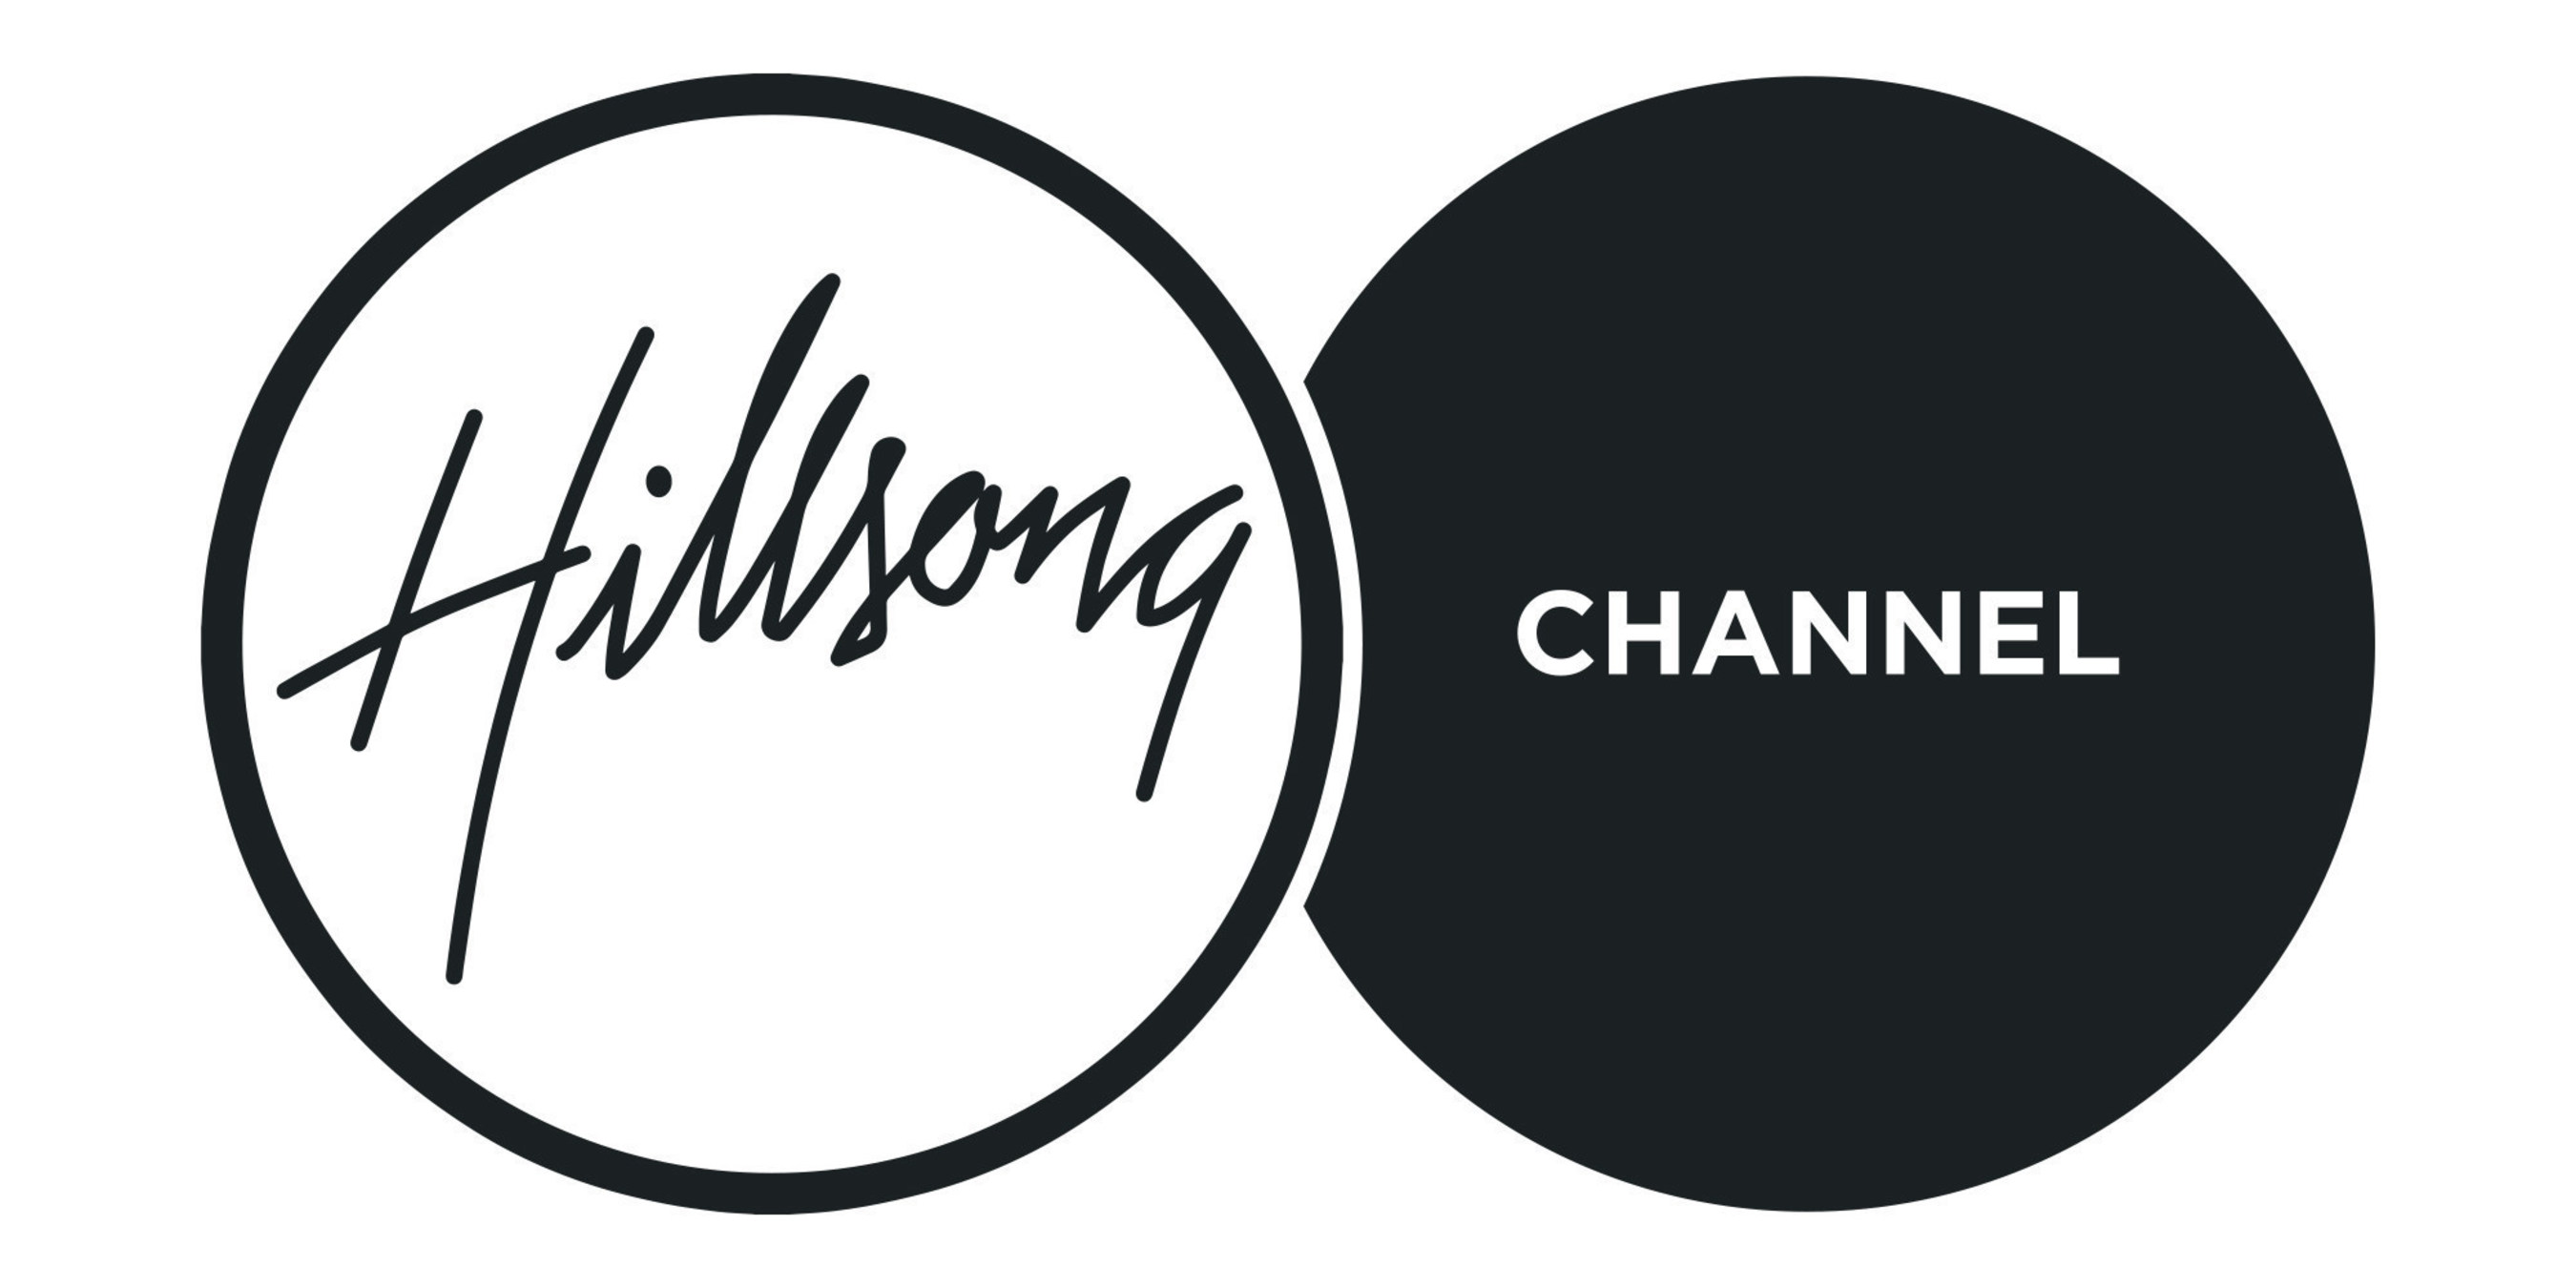 Trinity Broadcasting Network is partnering with Hillsong in the June 1st launch of Hillsong Channel, which will bring cutting-edge worship, music, and ministry to viewers around the world.